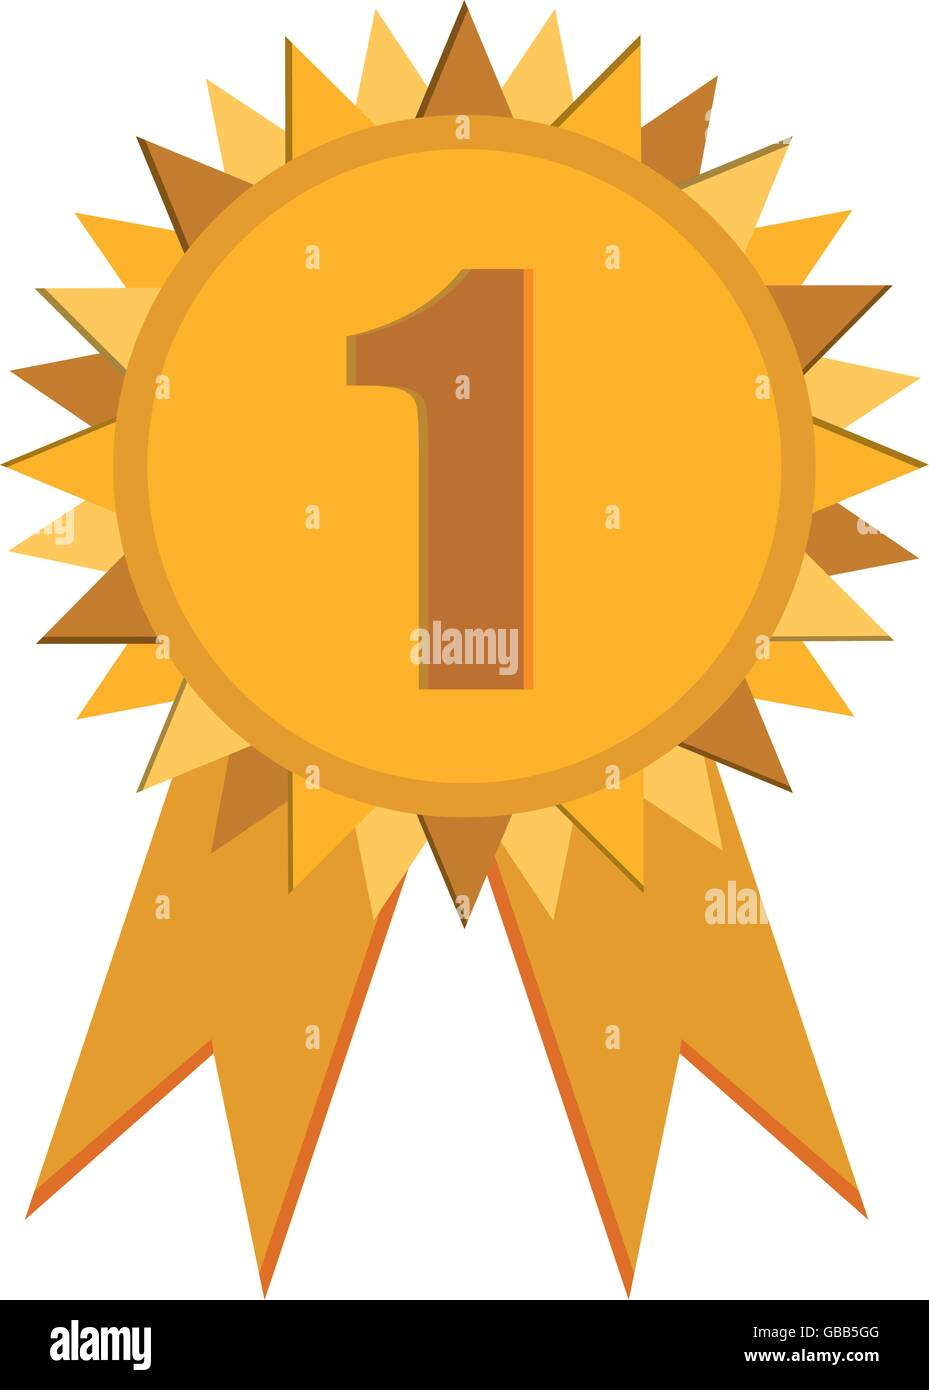 first place prize badge with ribbons icon - Stock Image